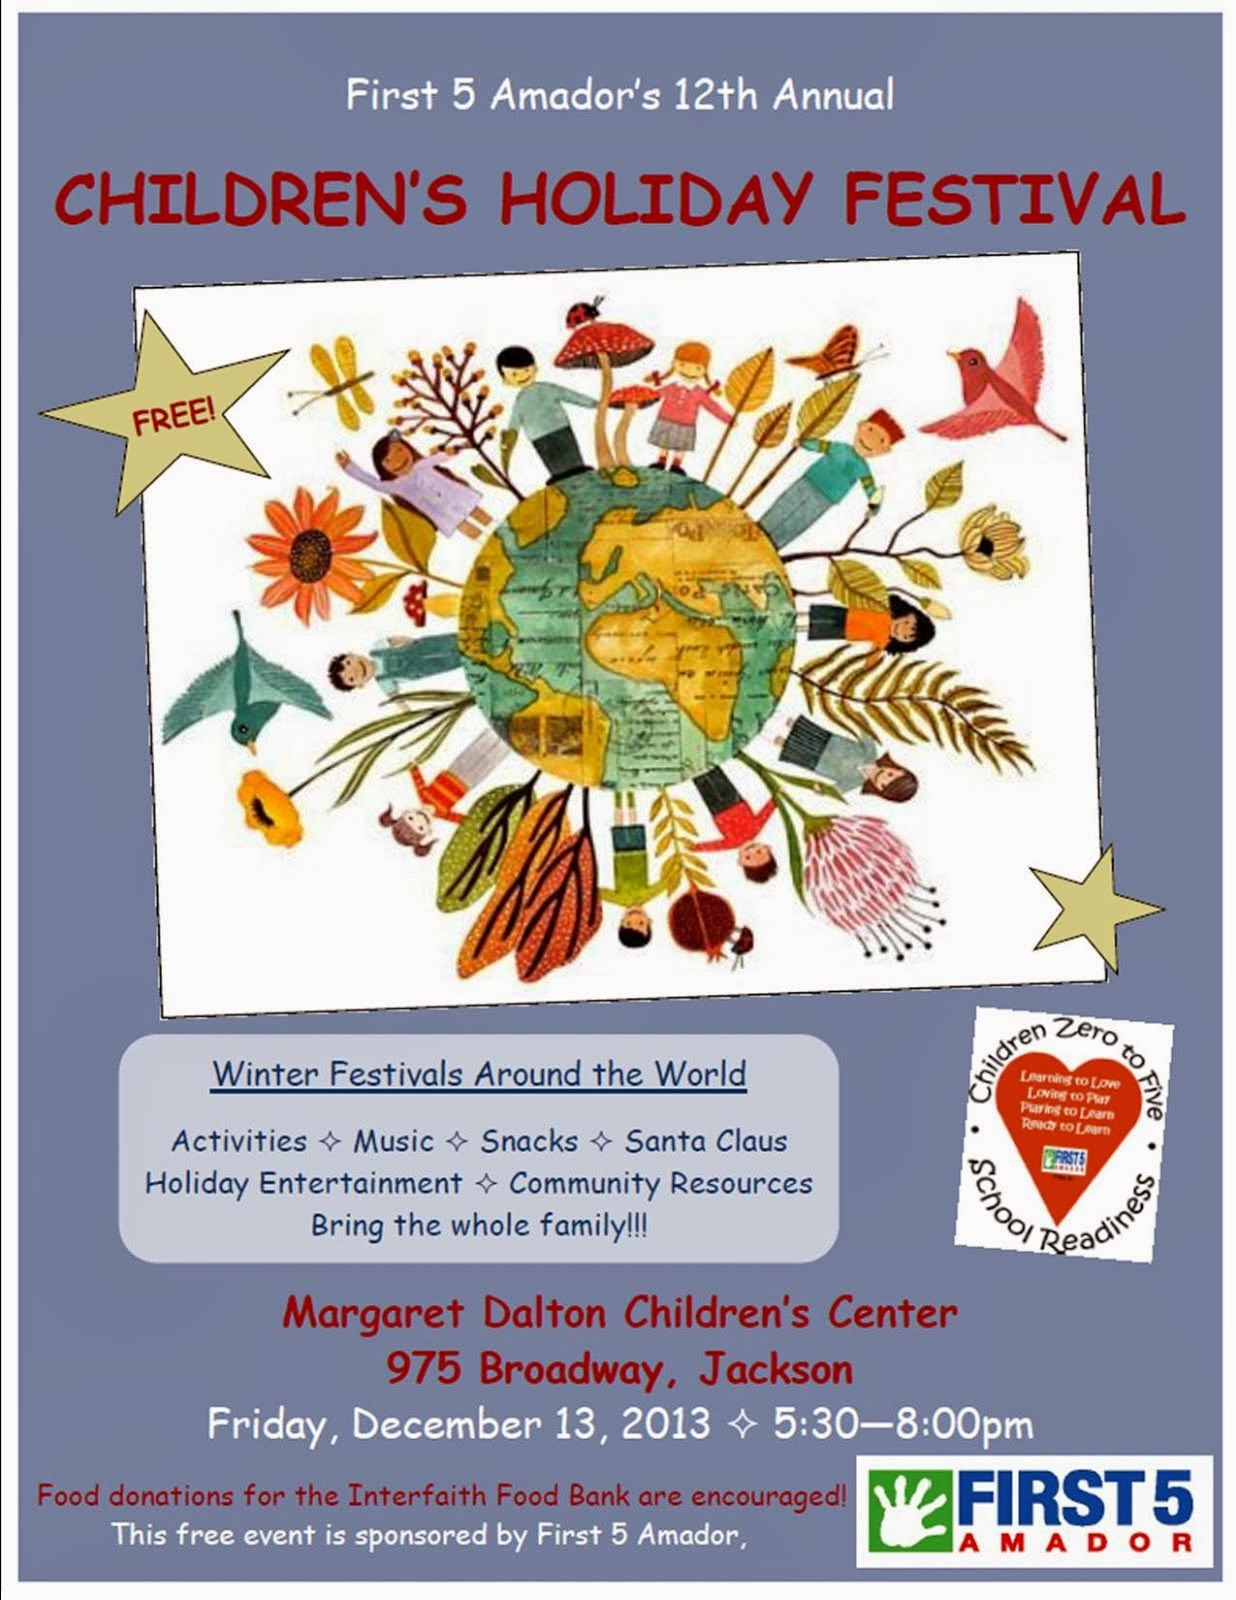 Children's Holiday Festival - Fri Dec 13